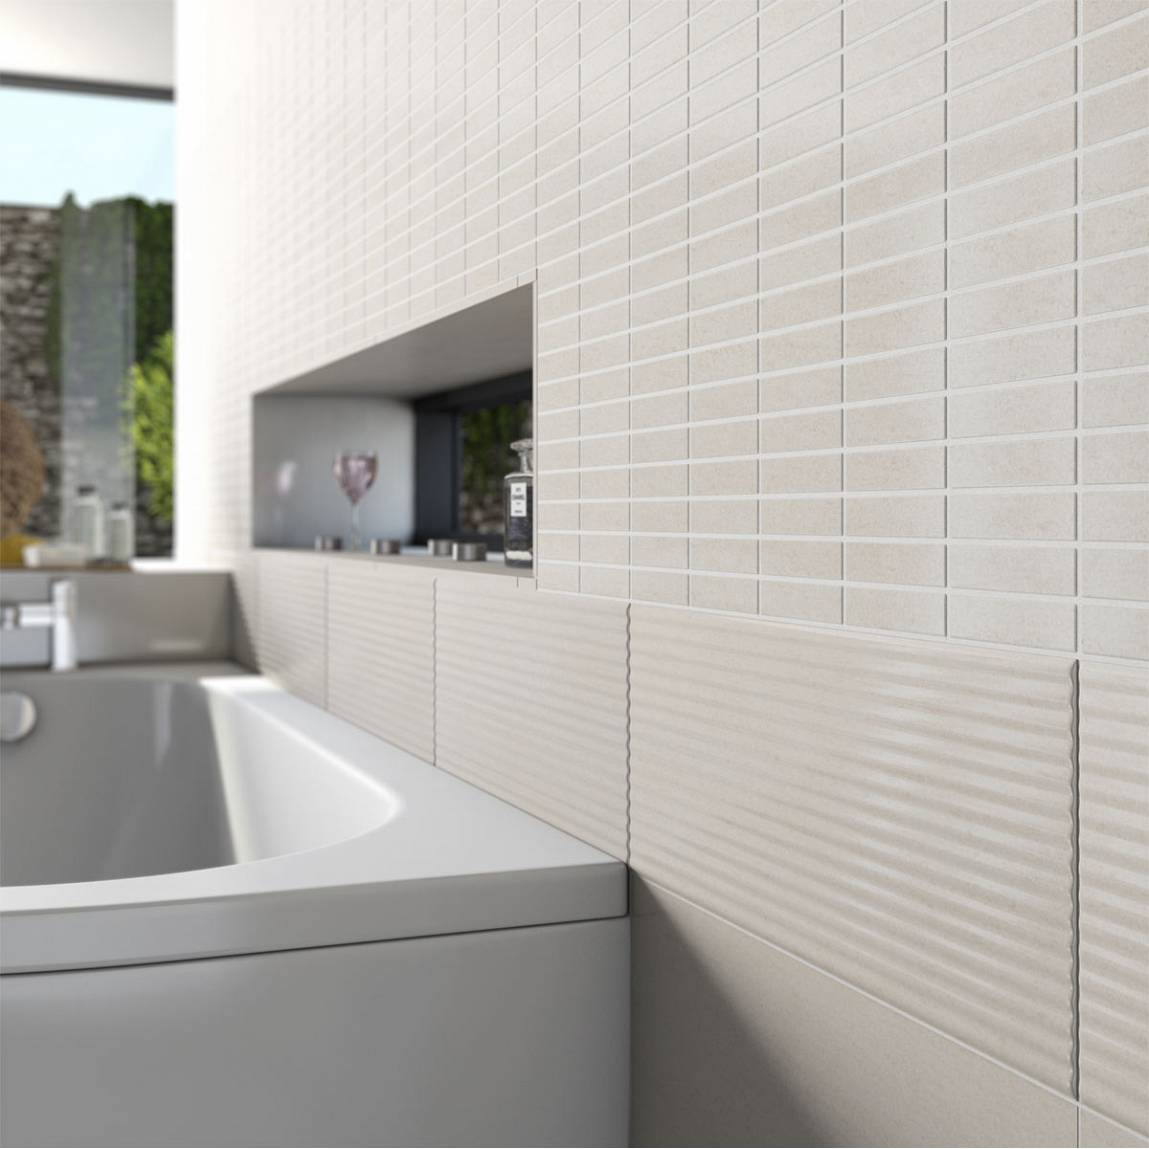 Bathroom Tile: Choosing Bathroom Tiles